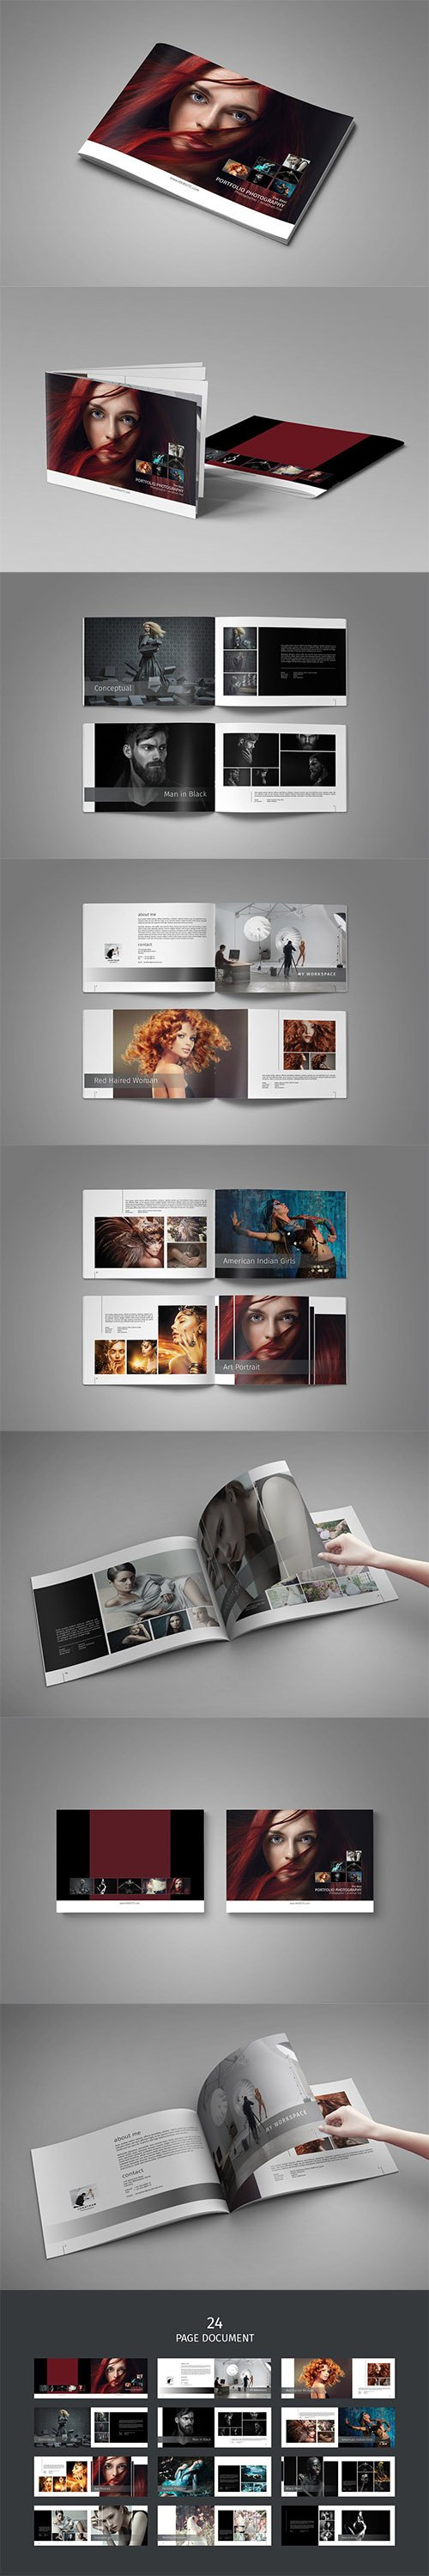 PSD Photo Album Template